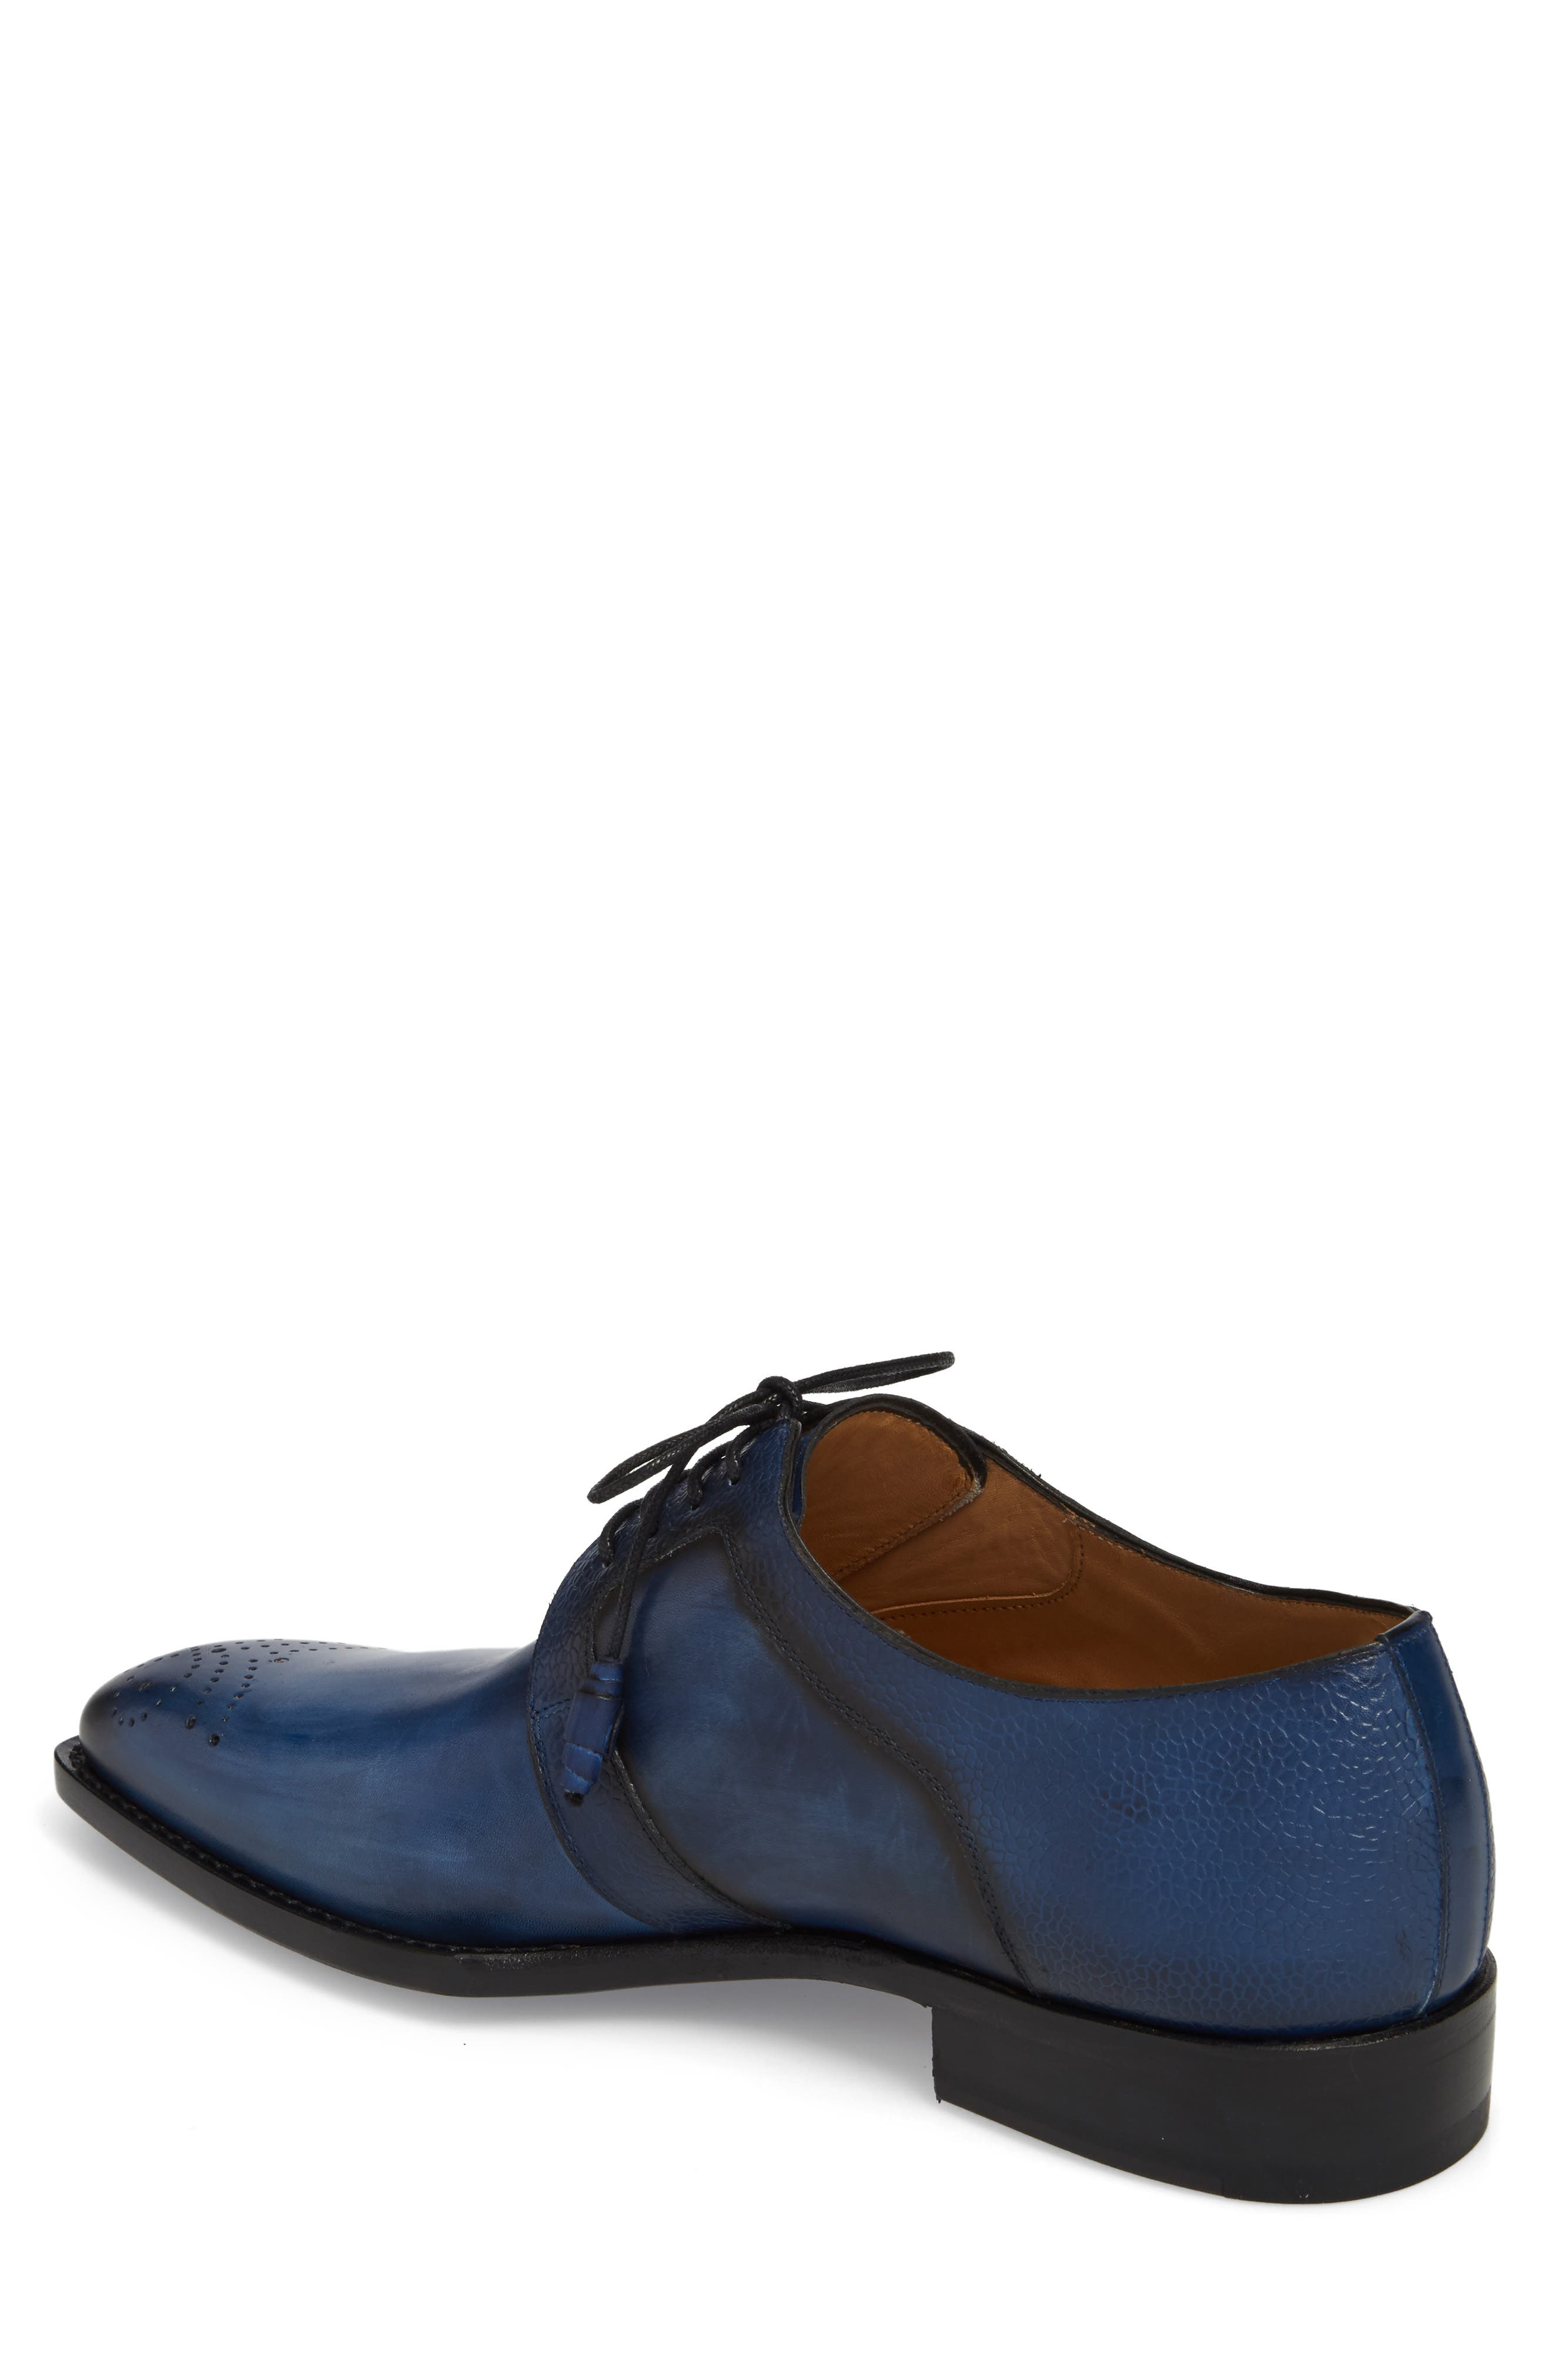 Saturno Medallion Toe Derby,                             Alternate thumbnail 2, color,                             Mid Blue Leather